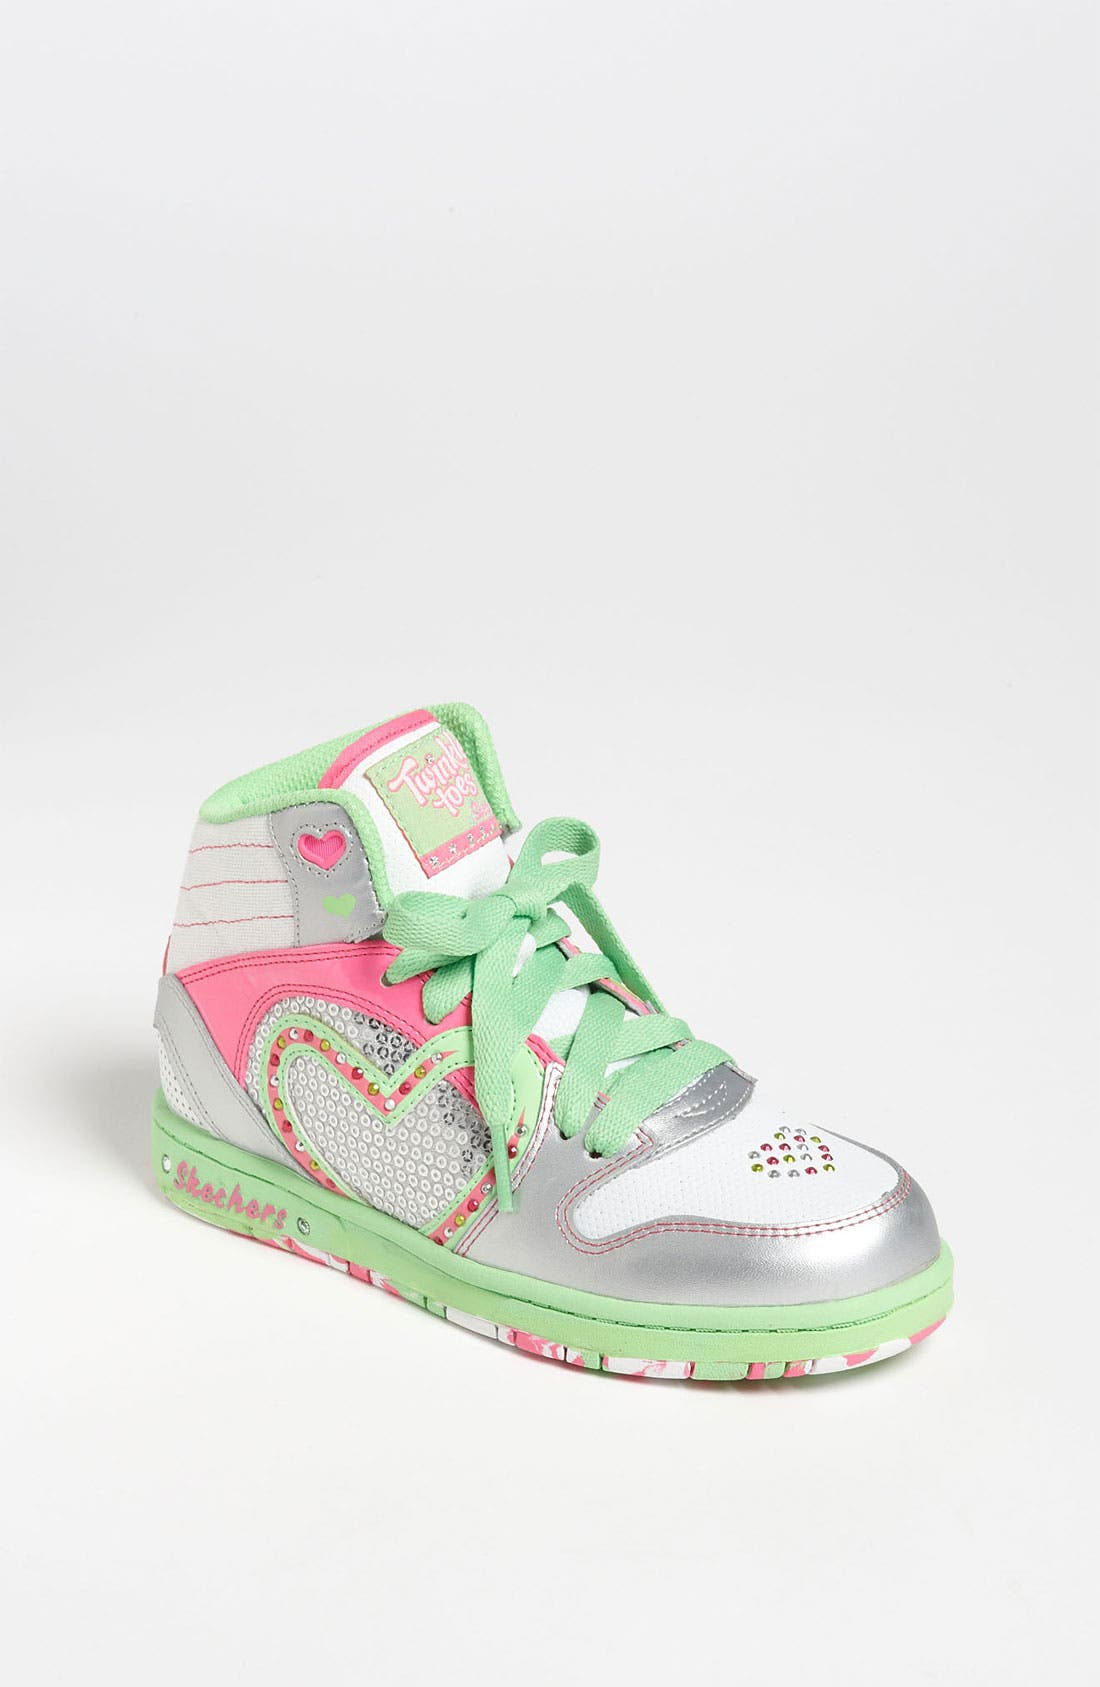 Main Image - SKECHERS 'Twinkle Toes - Heart N' Soul' Sneaker (Toddler, Little Kid & Big Kid)